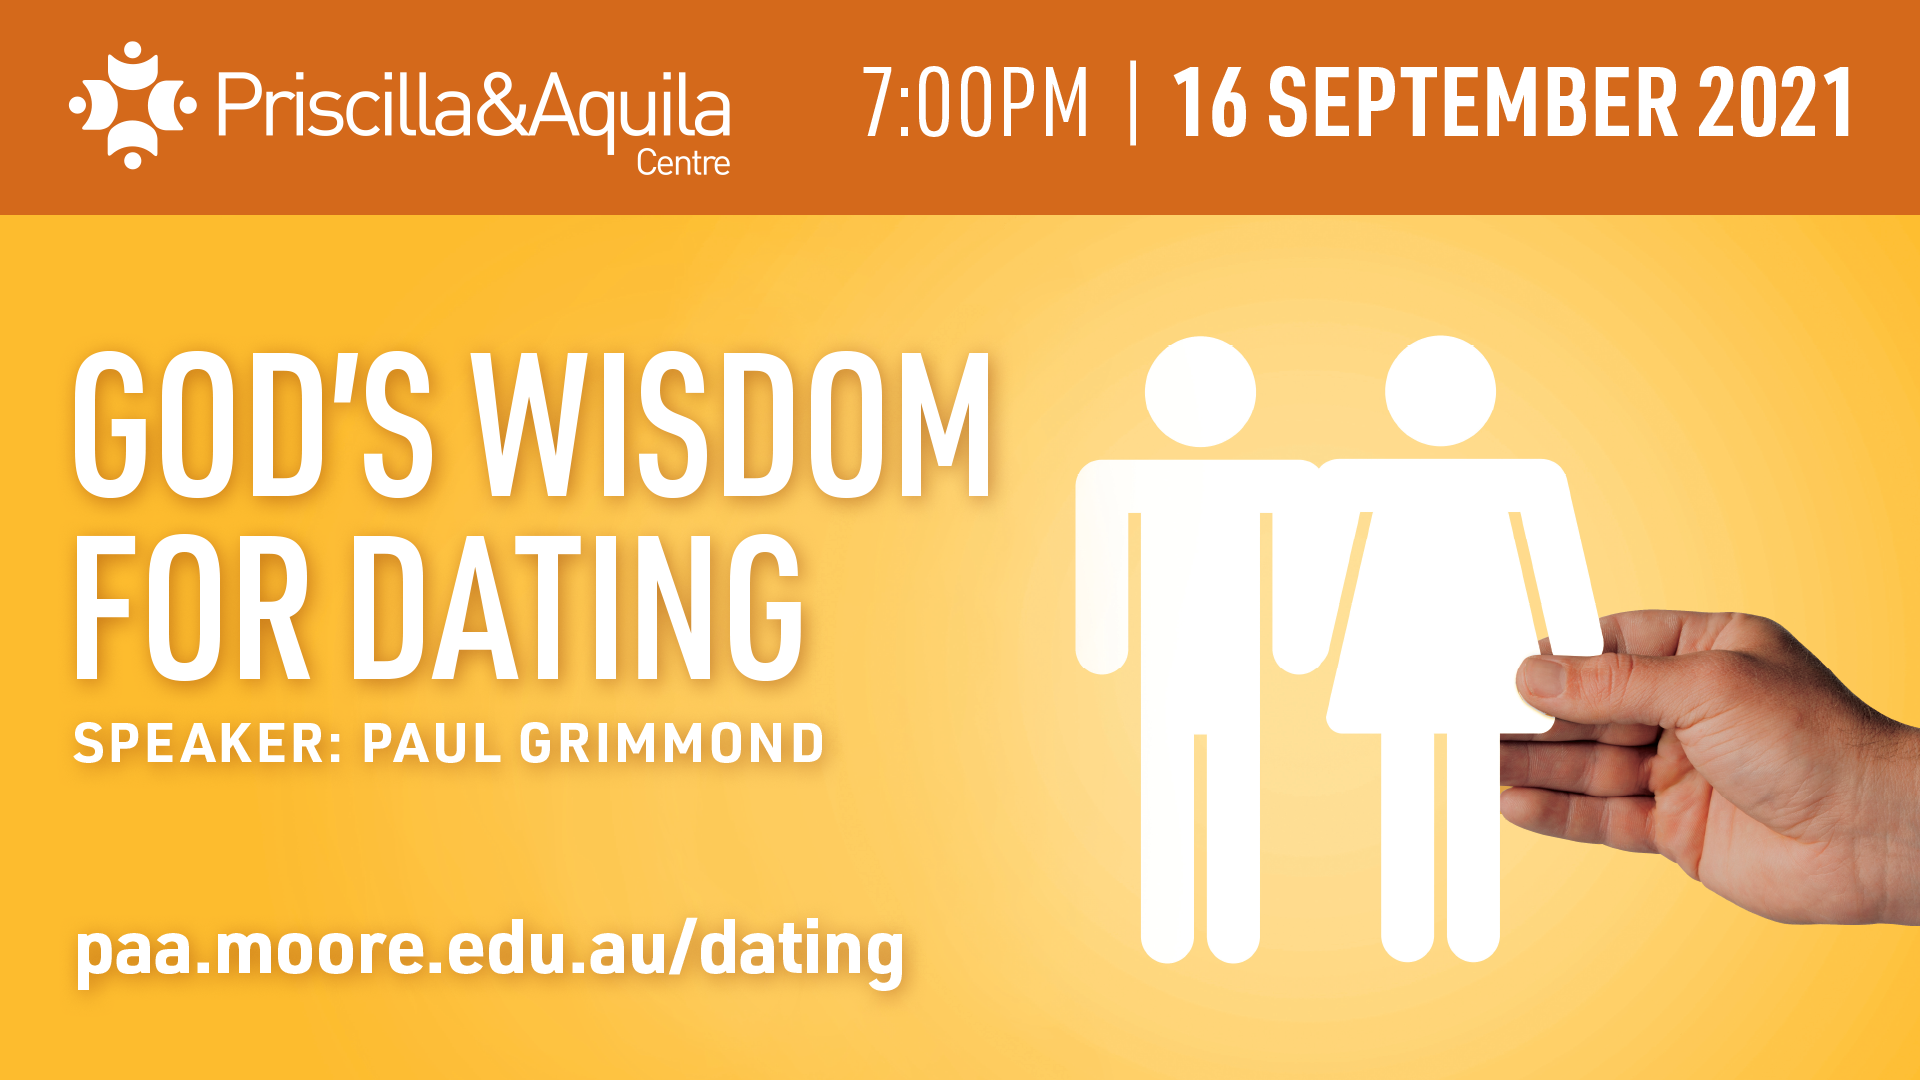 God's wisdom for dating event image